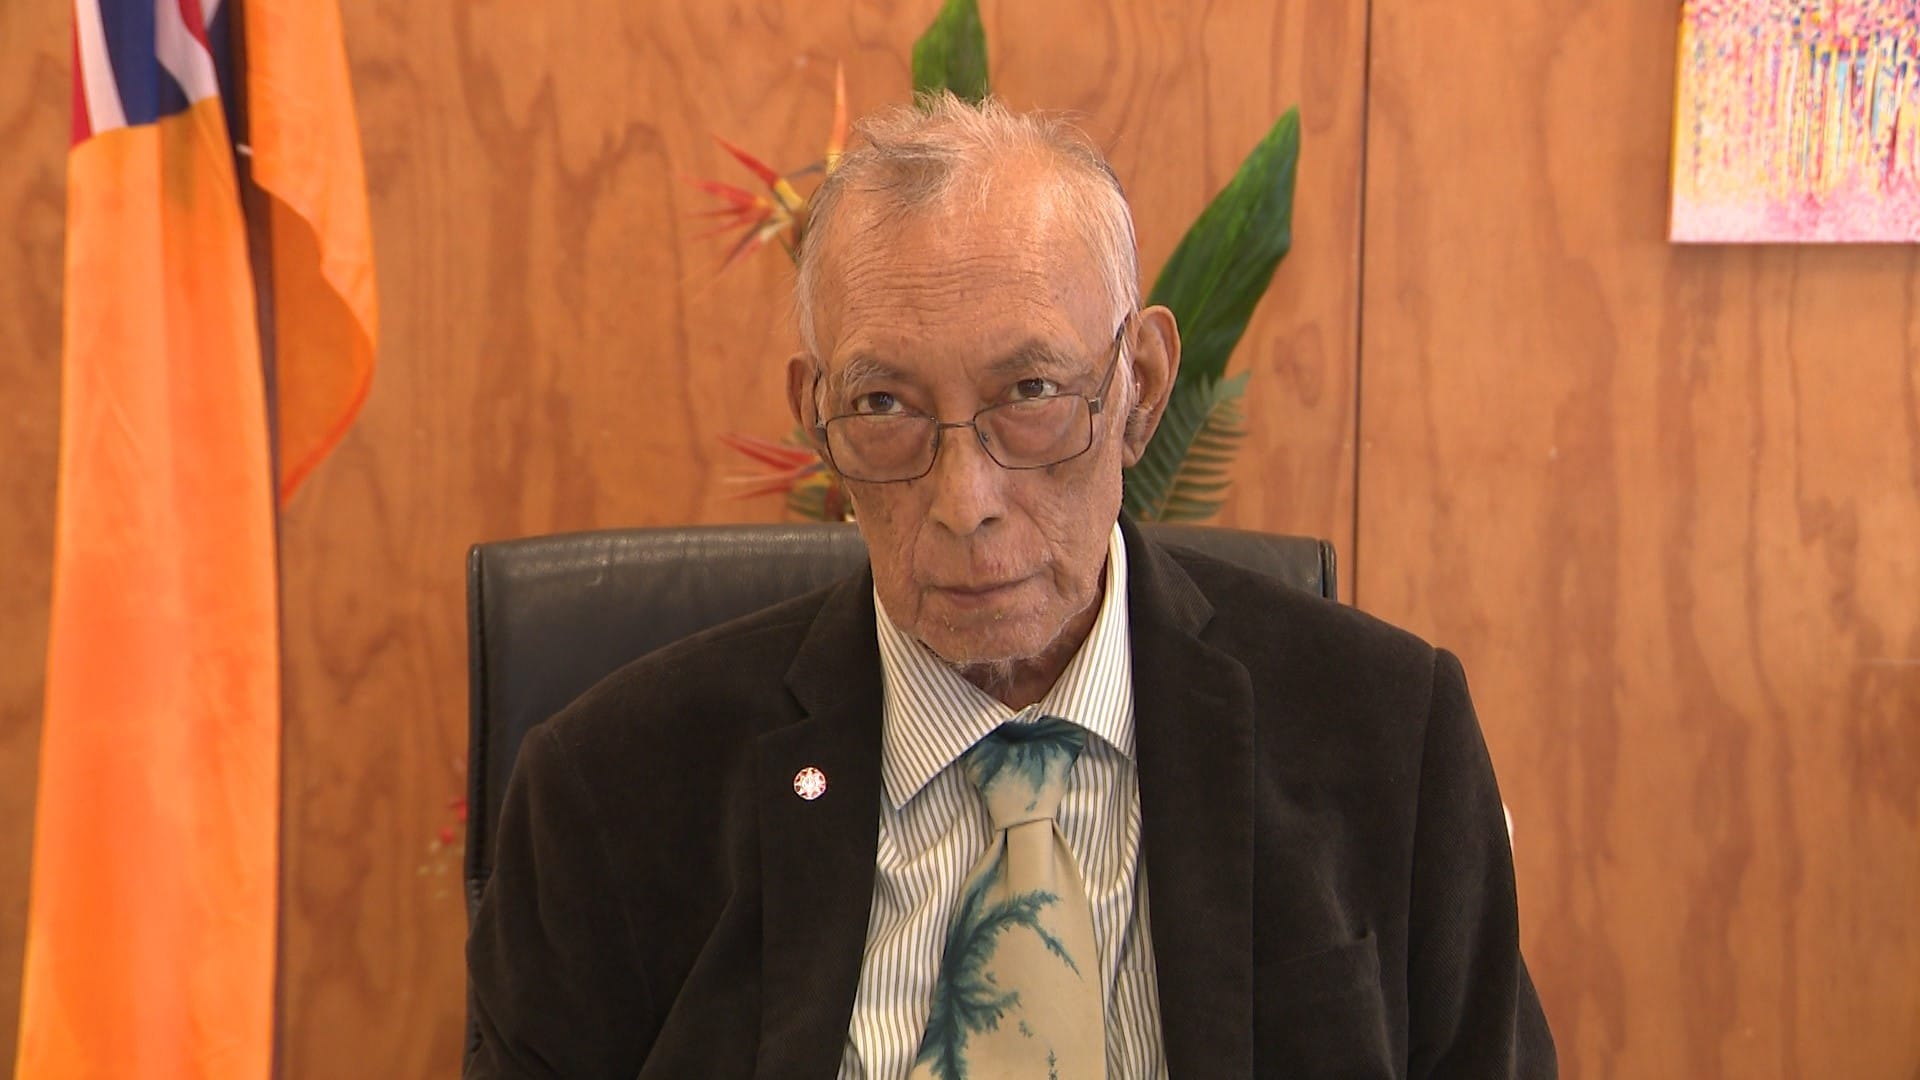 The former Premier Sir Toke Talagi was medivaced to New Zealand last night for medical treatment.  This has been officially announced by the Premier Honorable Dalton Tagelagi in the Niue legislative…